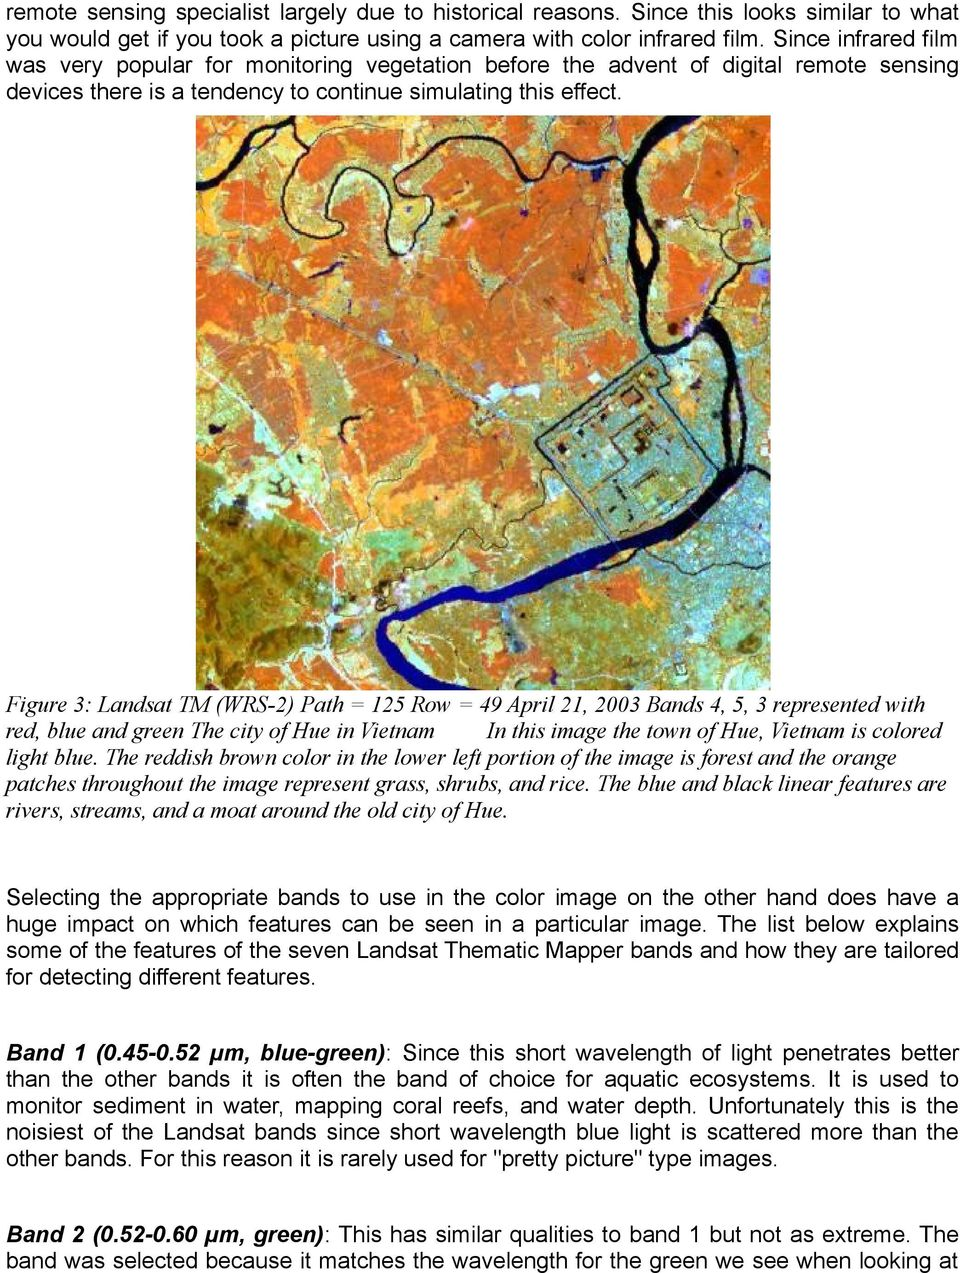 Figure 3: Landsat TM (WRS-2) Path = 125 Row = 49 April 21, 2003 Bands 4, 5, 3 represented with red, blue and green The city of Hue in Vietnam In this image the town of Hue, Vietnam is colored light